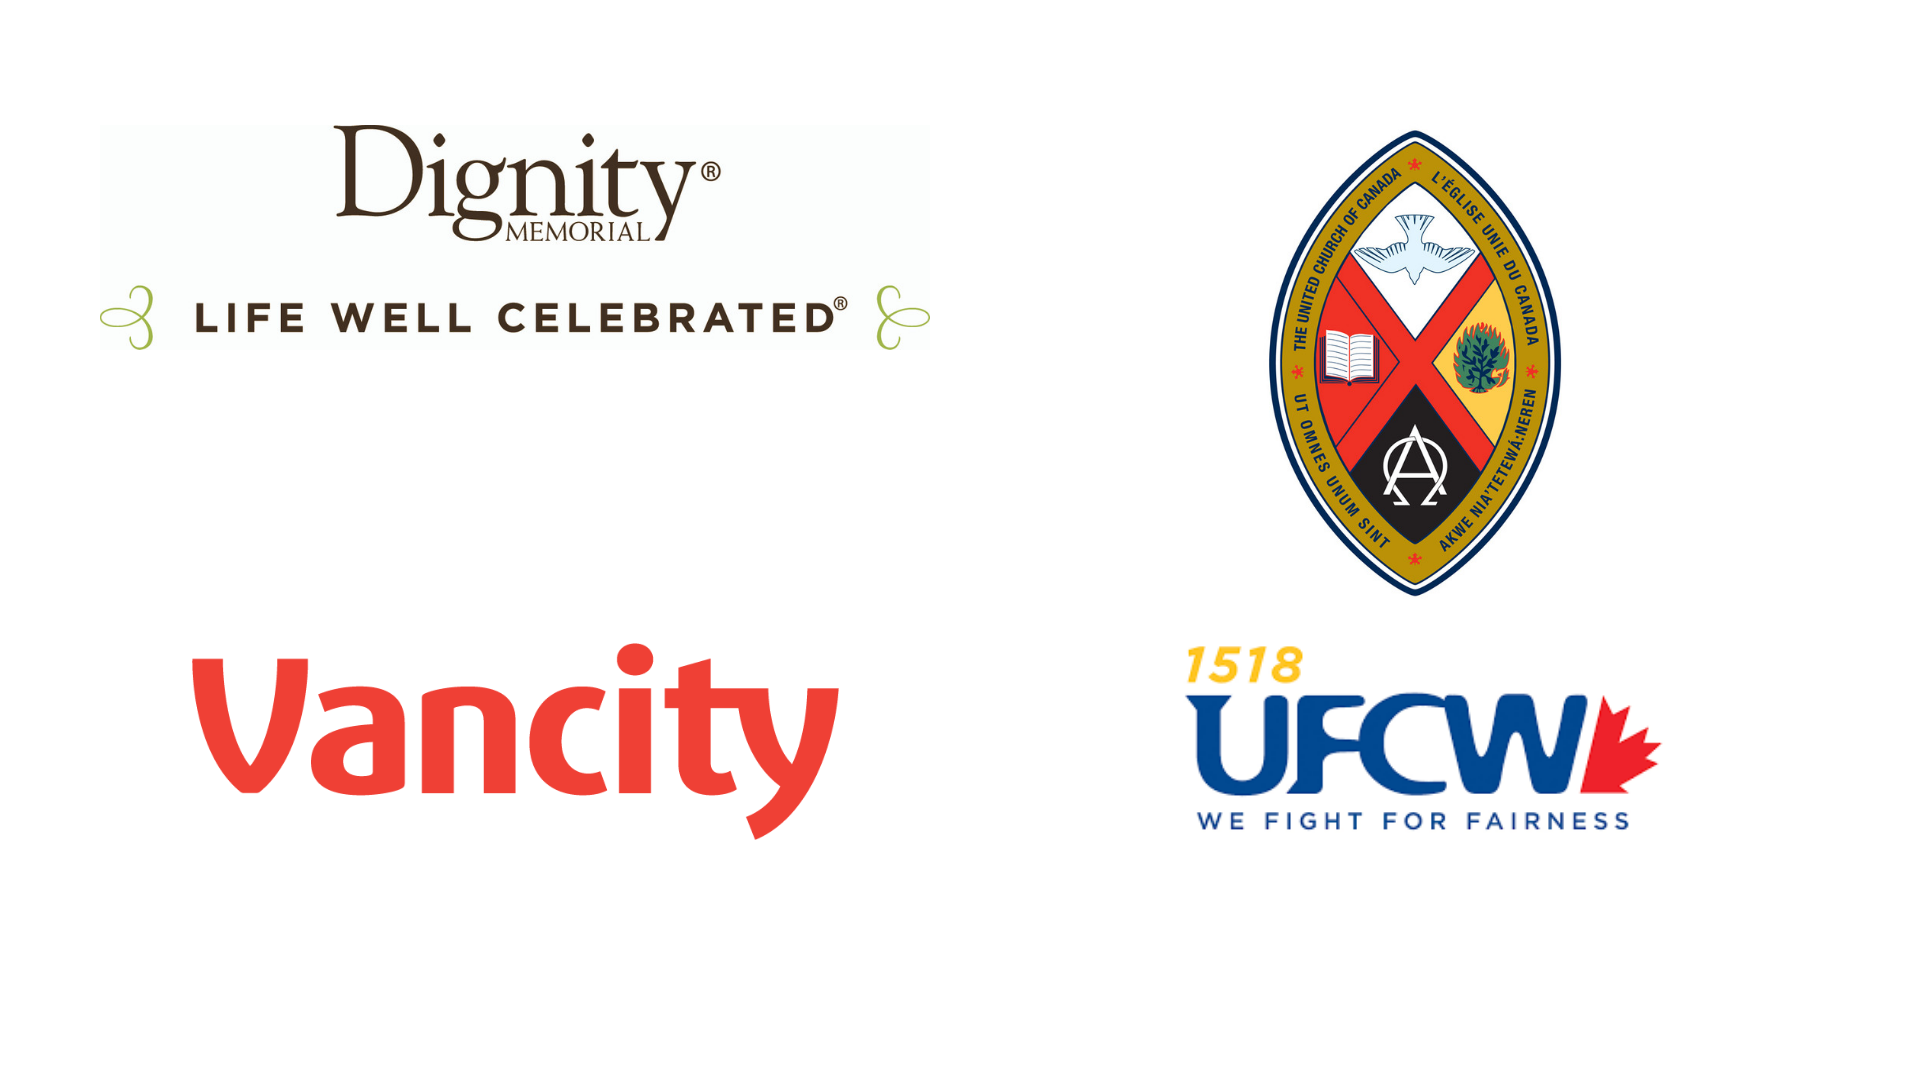 Thank you to Dignity Memorial, Vancity, UFCW 1518, and the United Church of Canada